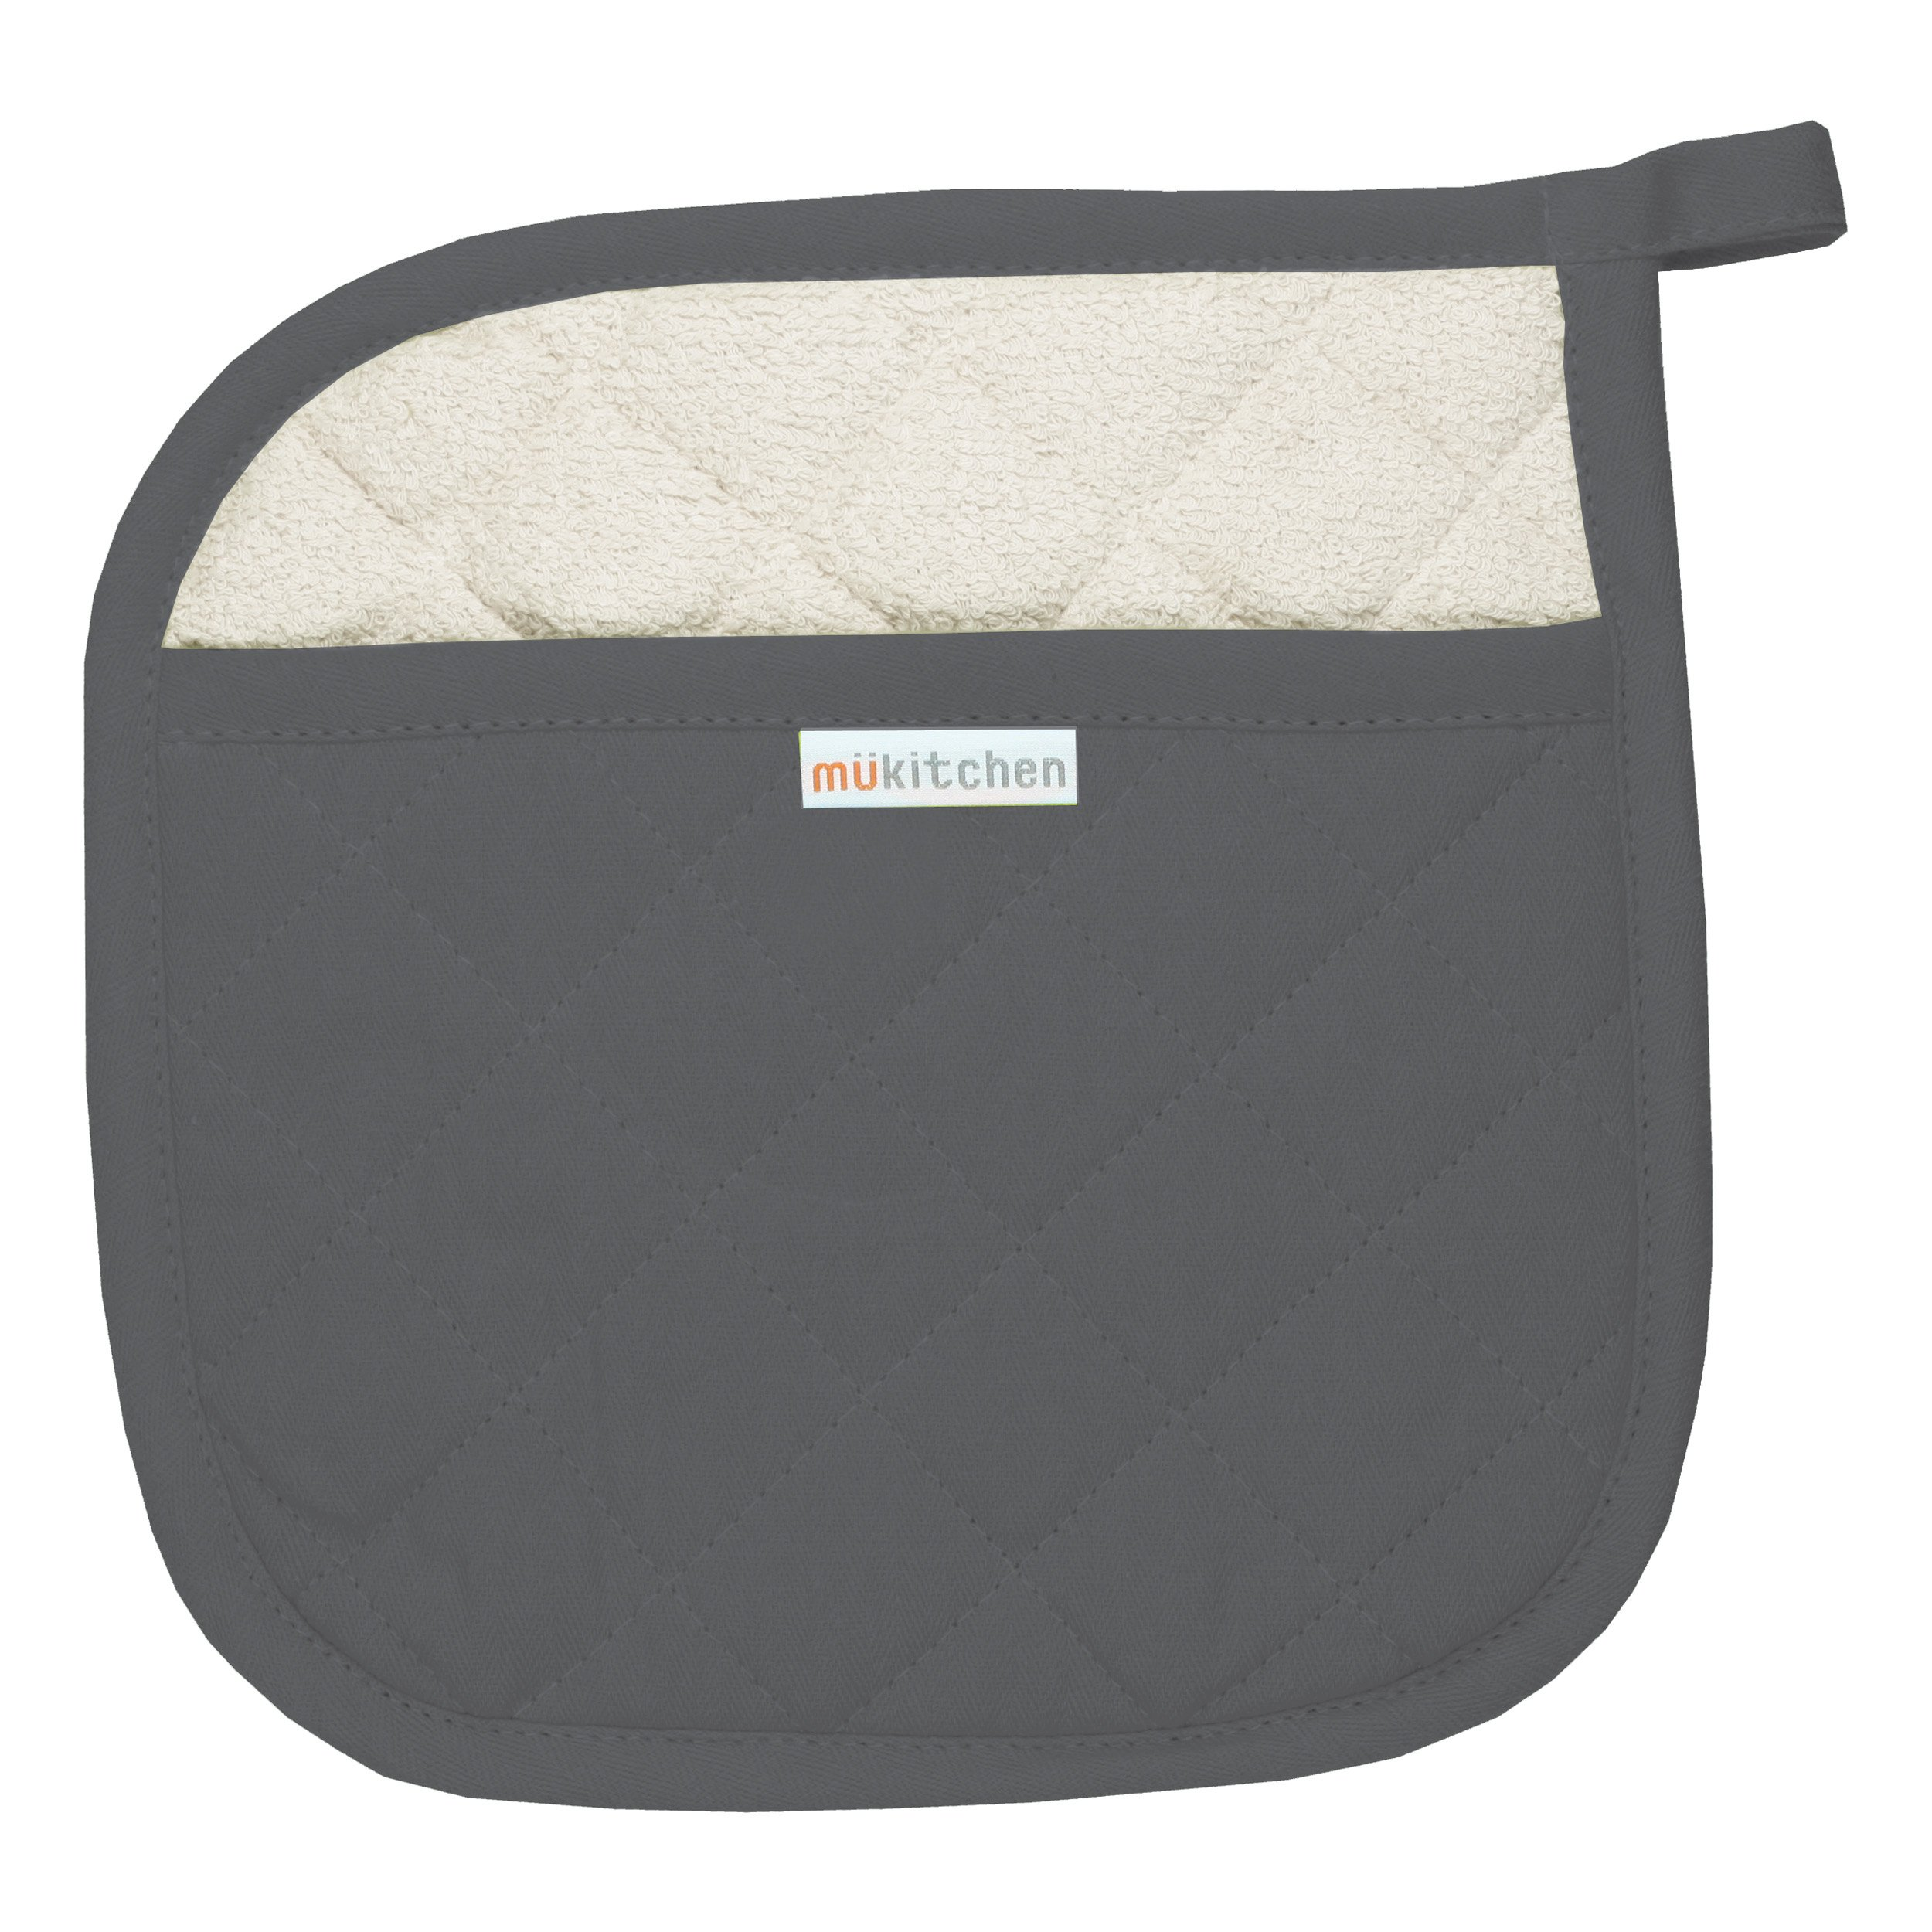 MUkitchen 100% Quilted Cotton Pot Holder, Stainless - Set of 2 by MUkitchen